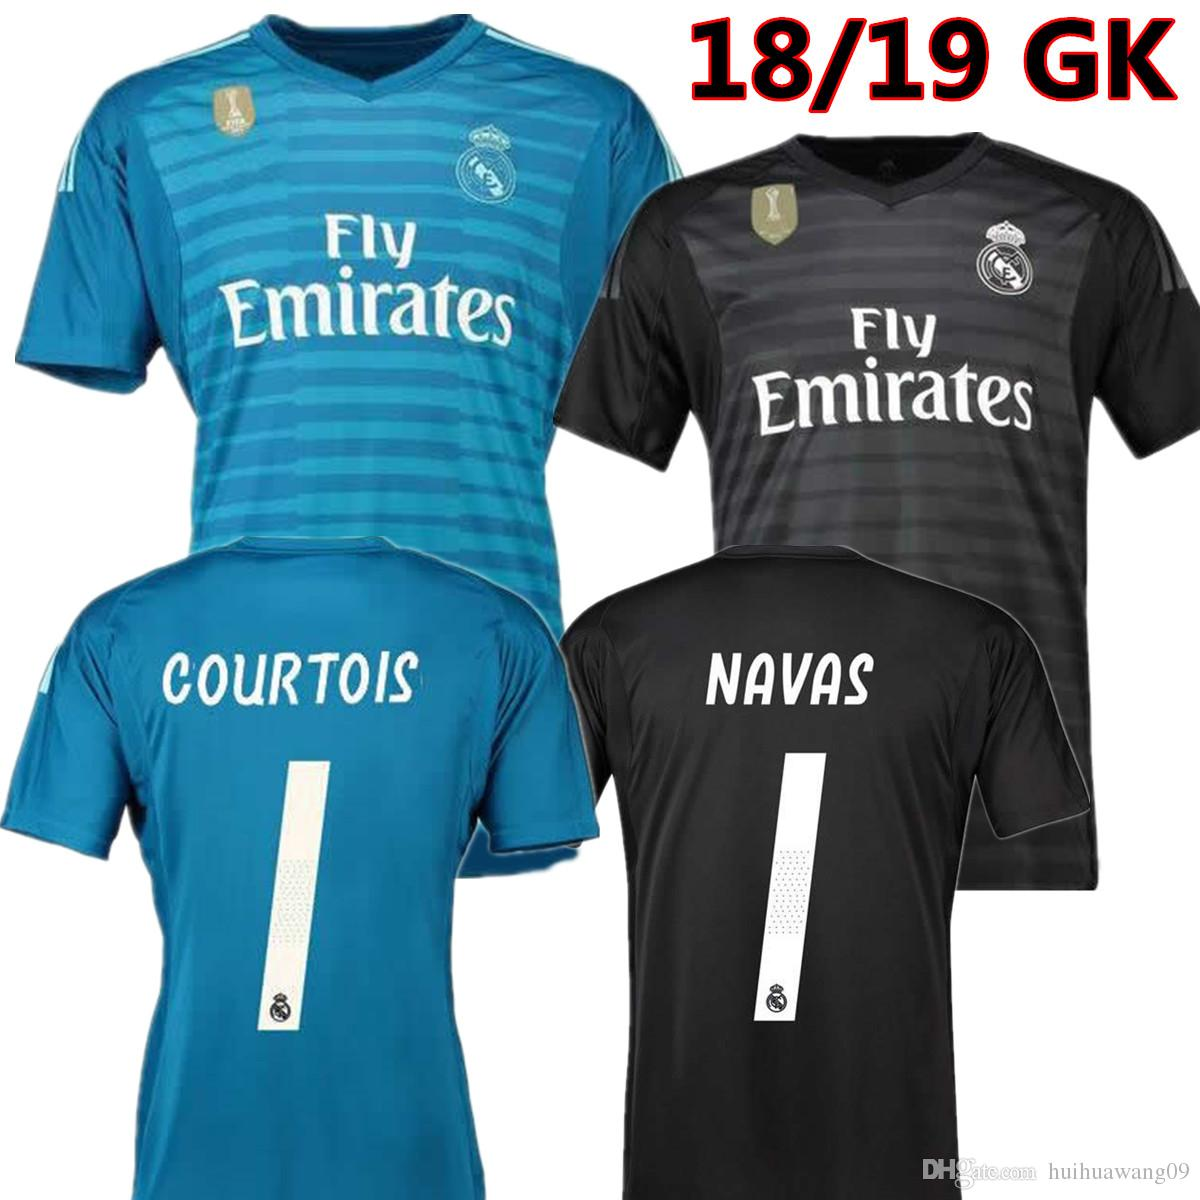 super popular 01a0d f79d5 2018 2019 Real Madrid Goalkeeper Jerseys 18 19 Keylor Navas Jersey Camiseta  de futbol 25 Thibaut Courtois 1 Real madrid BALE maillot de foot